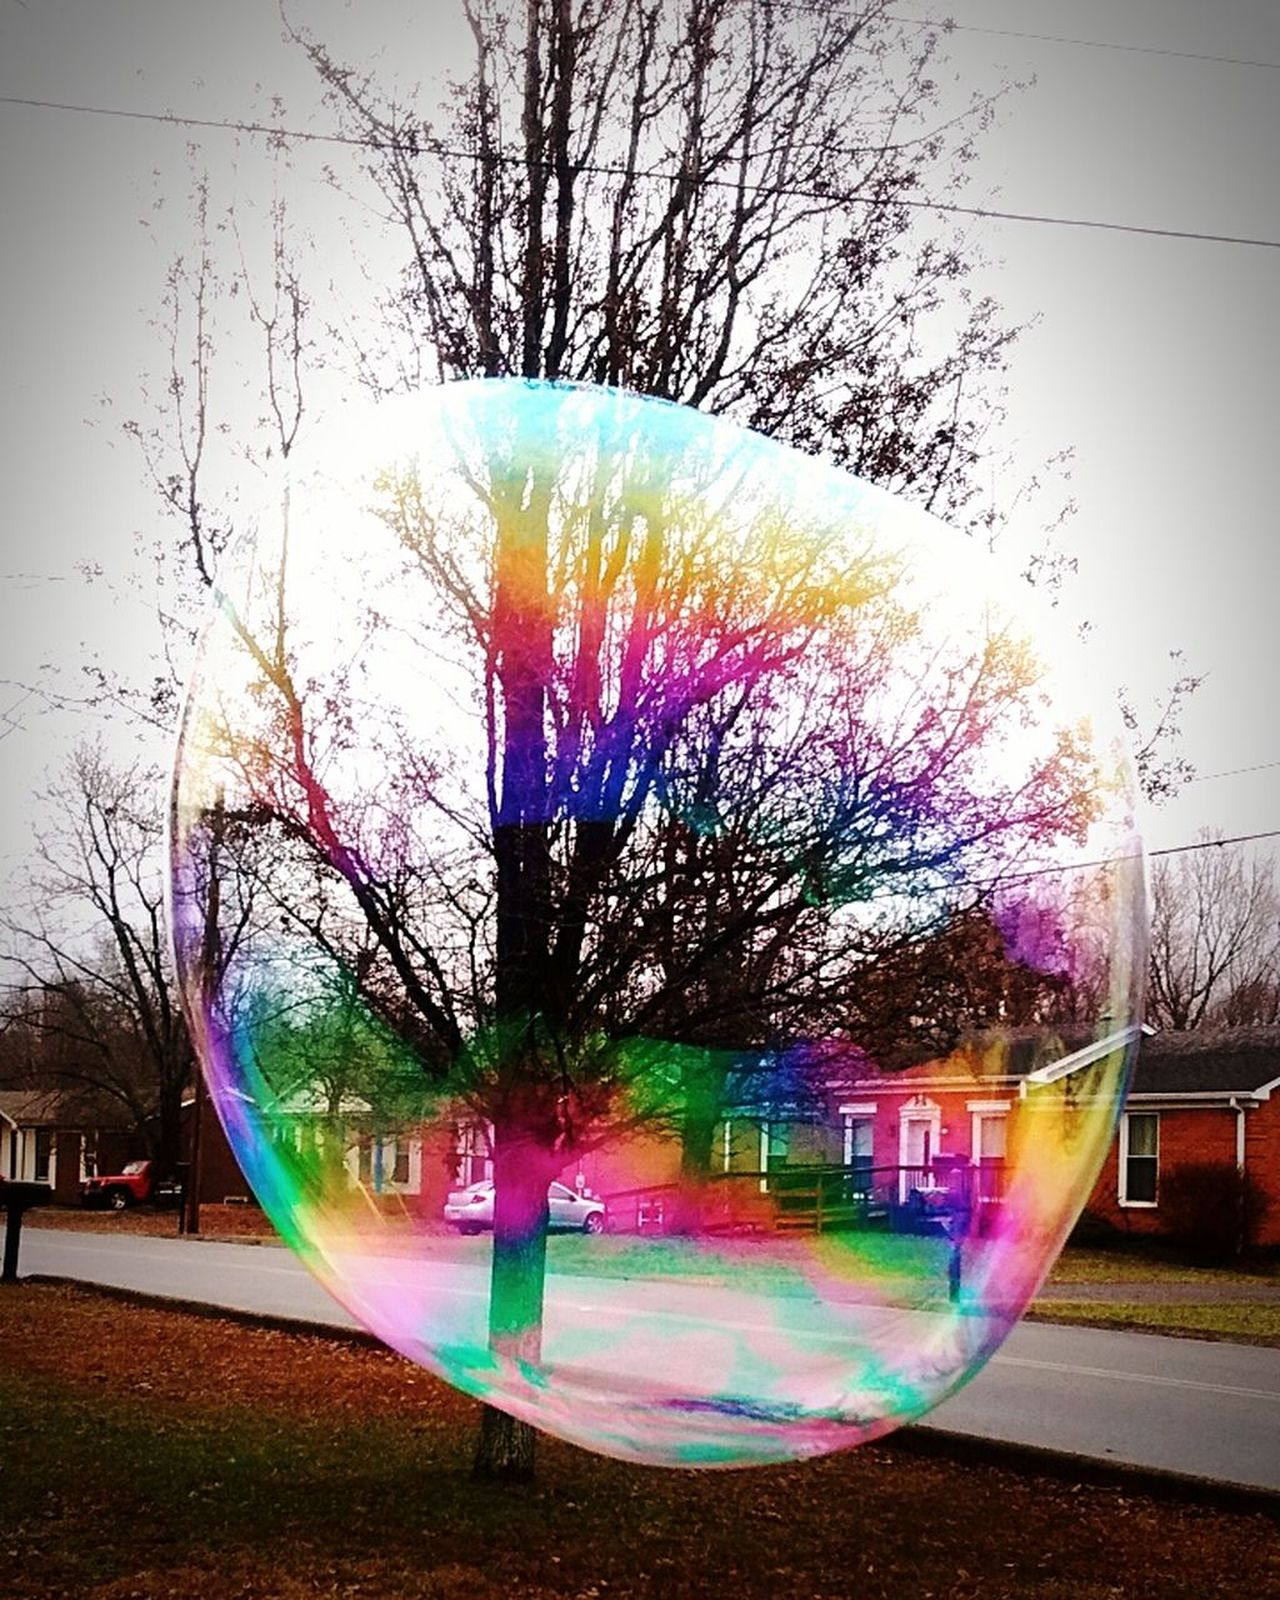 Bubble Colorful Suburbanlife Childhoodmemories Playing Outside